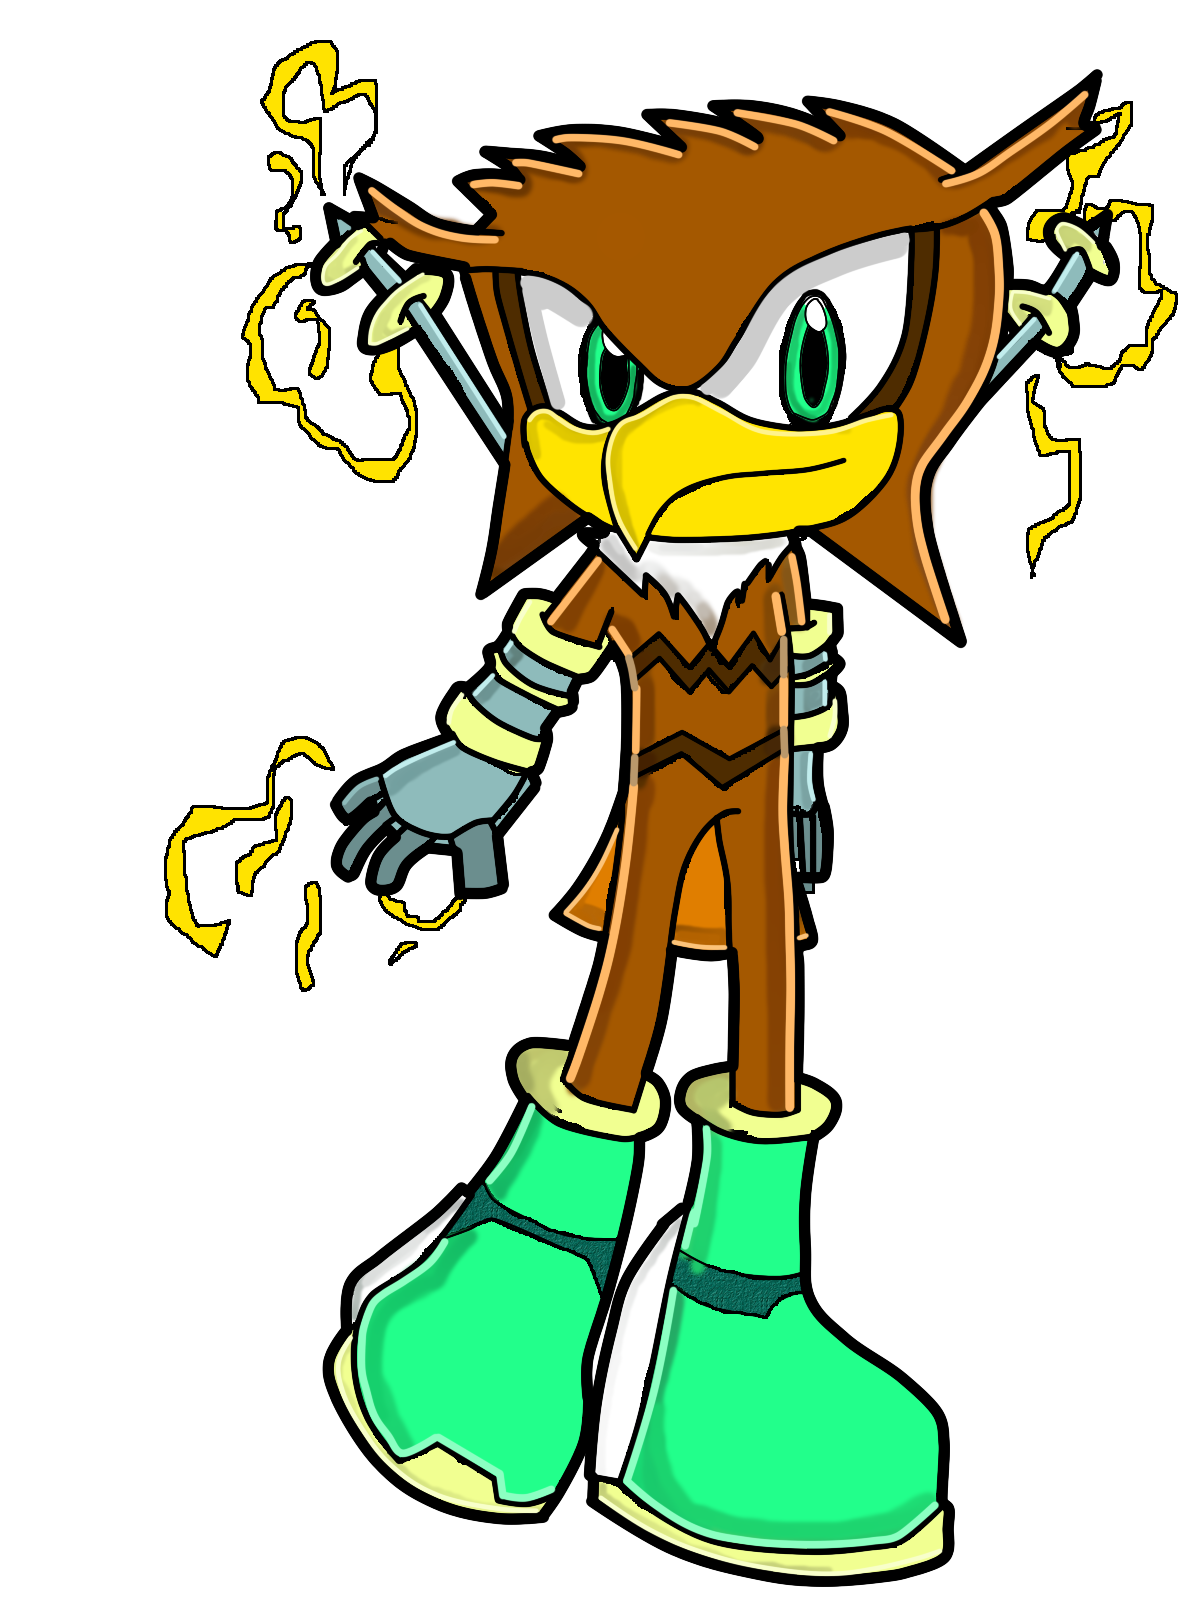 shunt the owl sonic fan characters wiki fandom powered by wikia  shunt s past desing from which the thunder 66 gets it s color